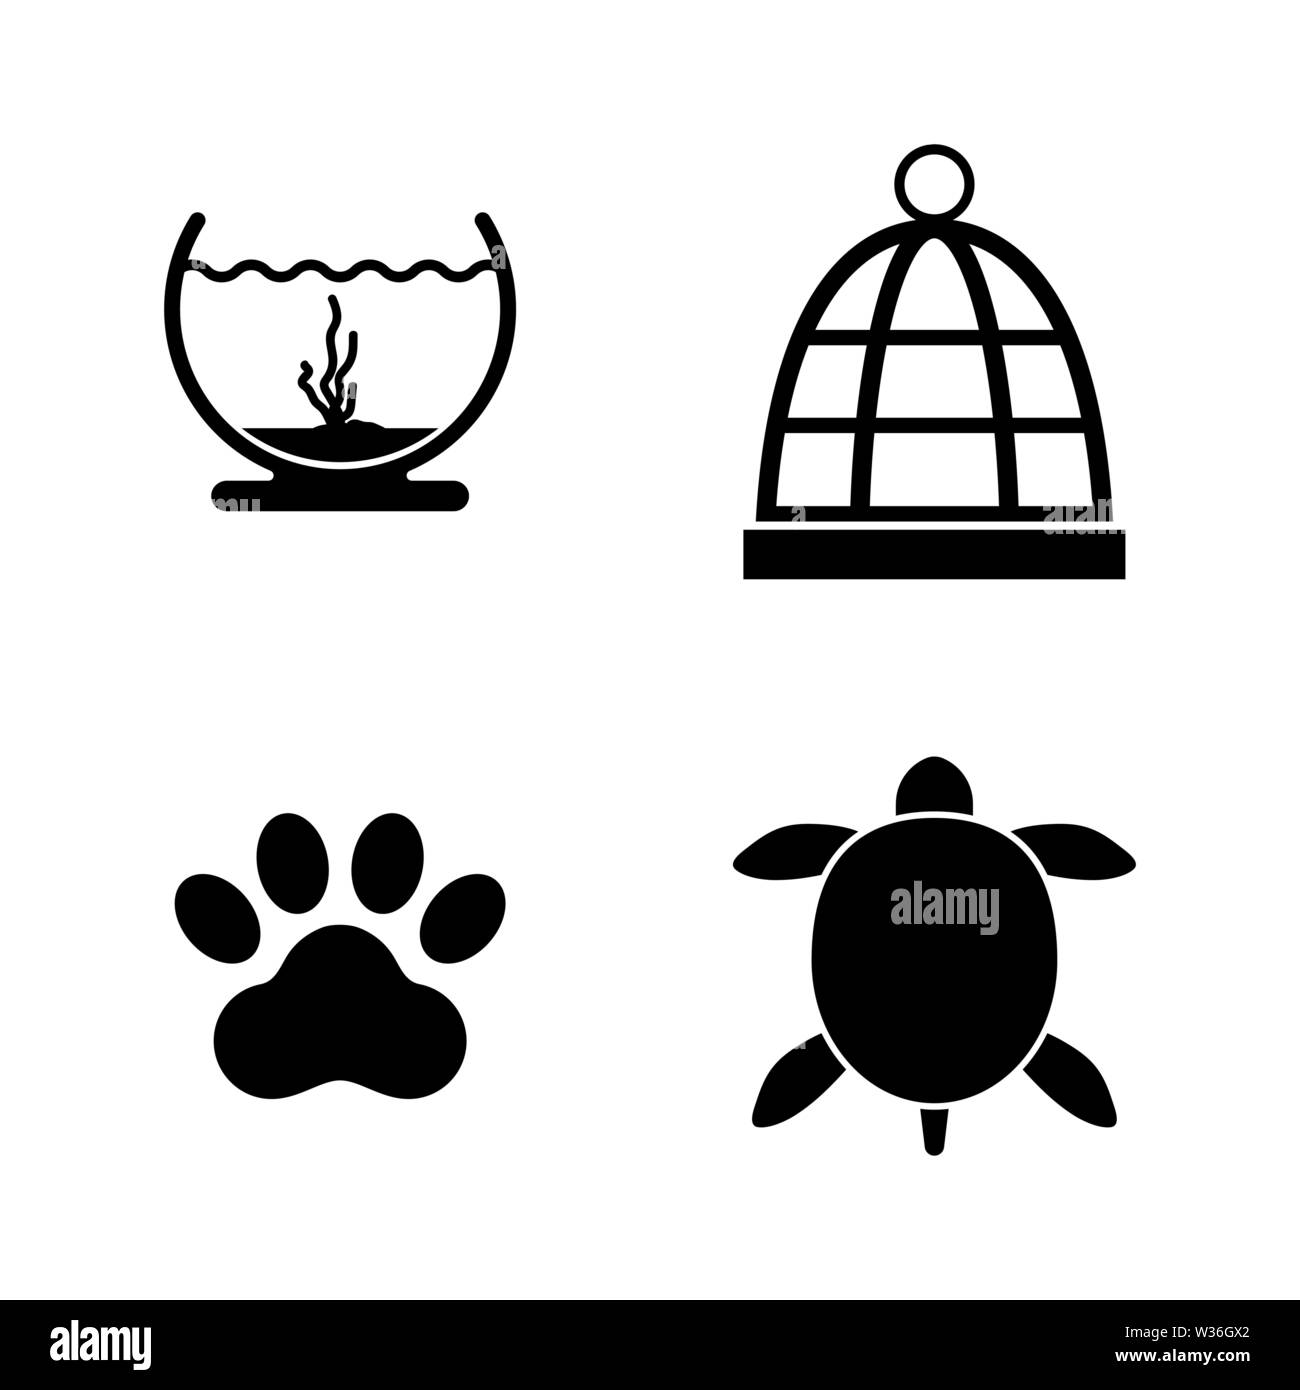 Keeping Pets. Simple Related Vector Icons Set for Video, Mobile Apps, Web Sites, Print Projects and Your Design. Keeping Pets icon Black Flat Illustra - Stock Image